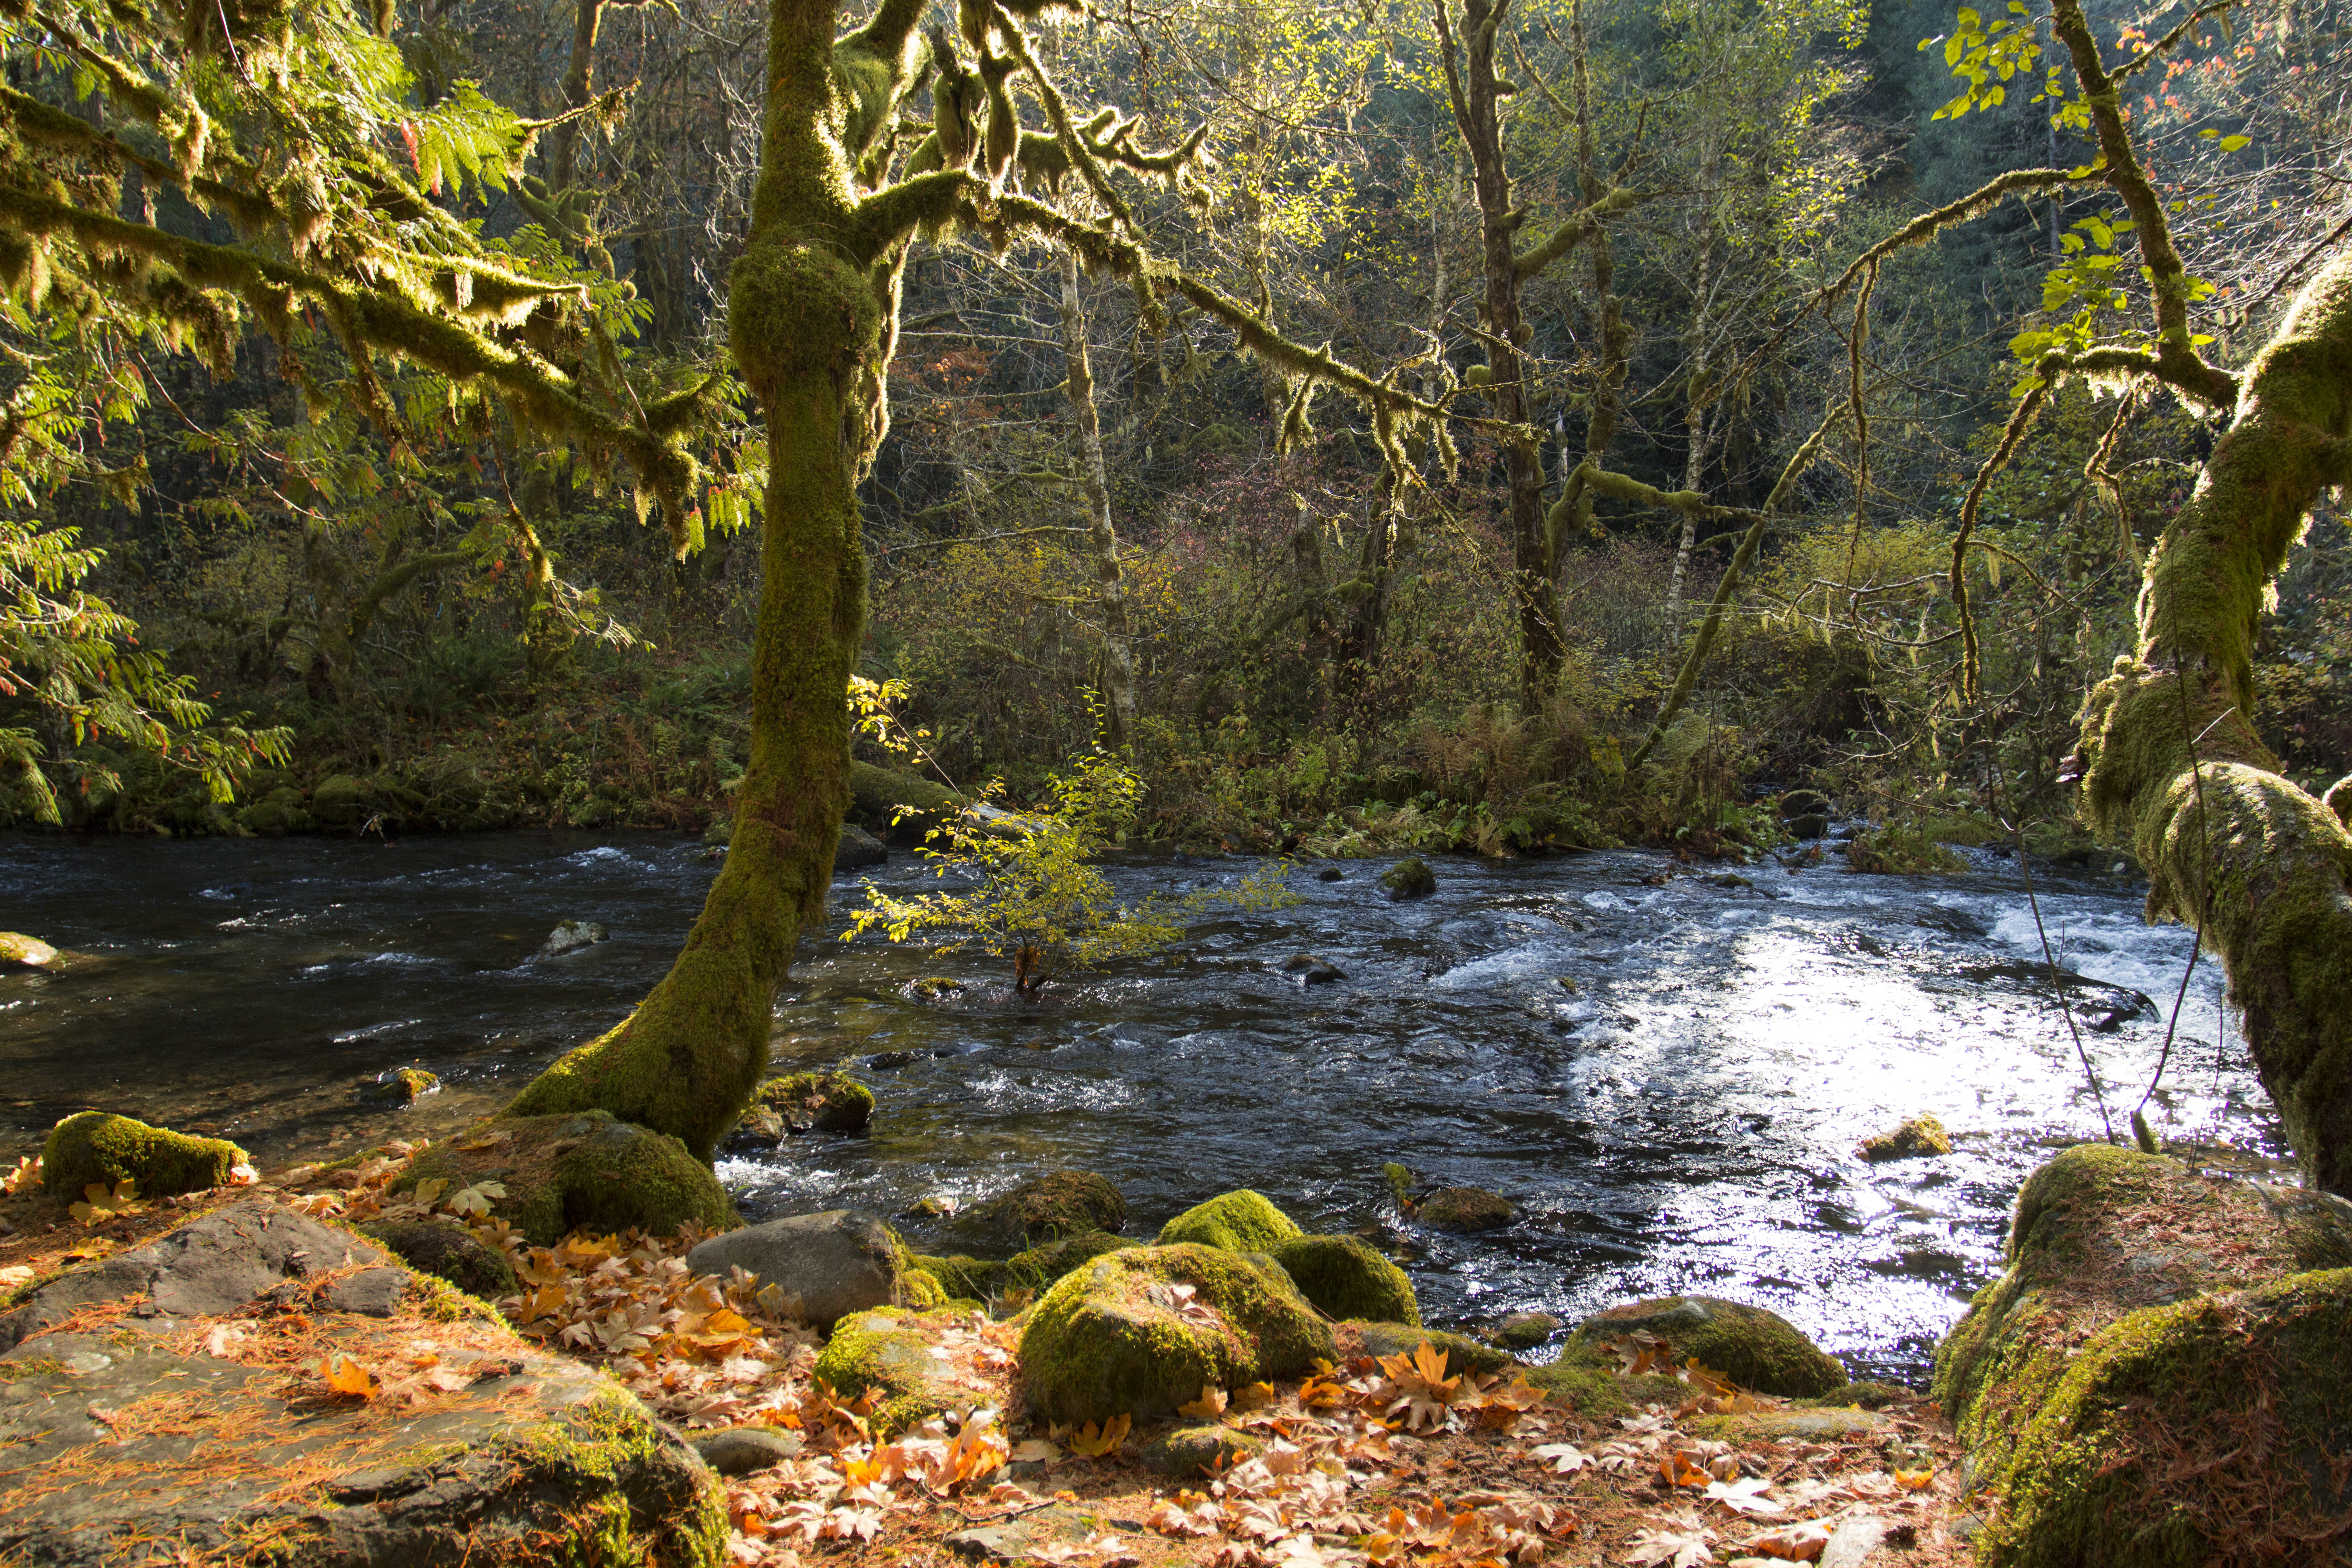 Middle fork willamette river, oregon photo